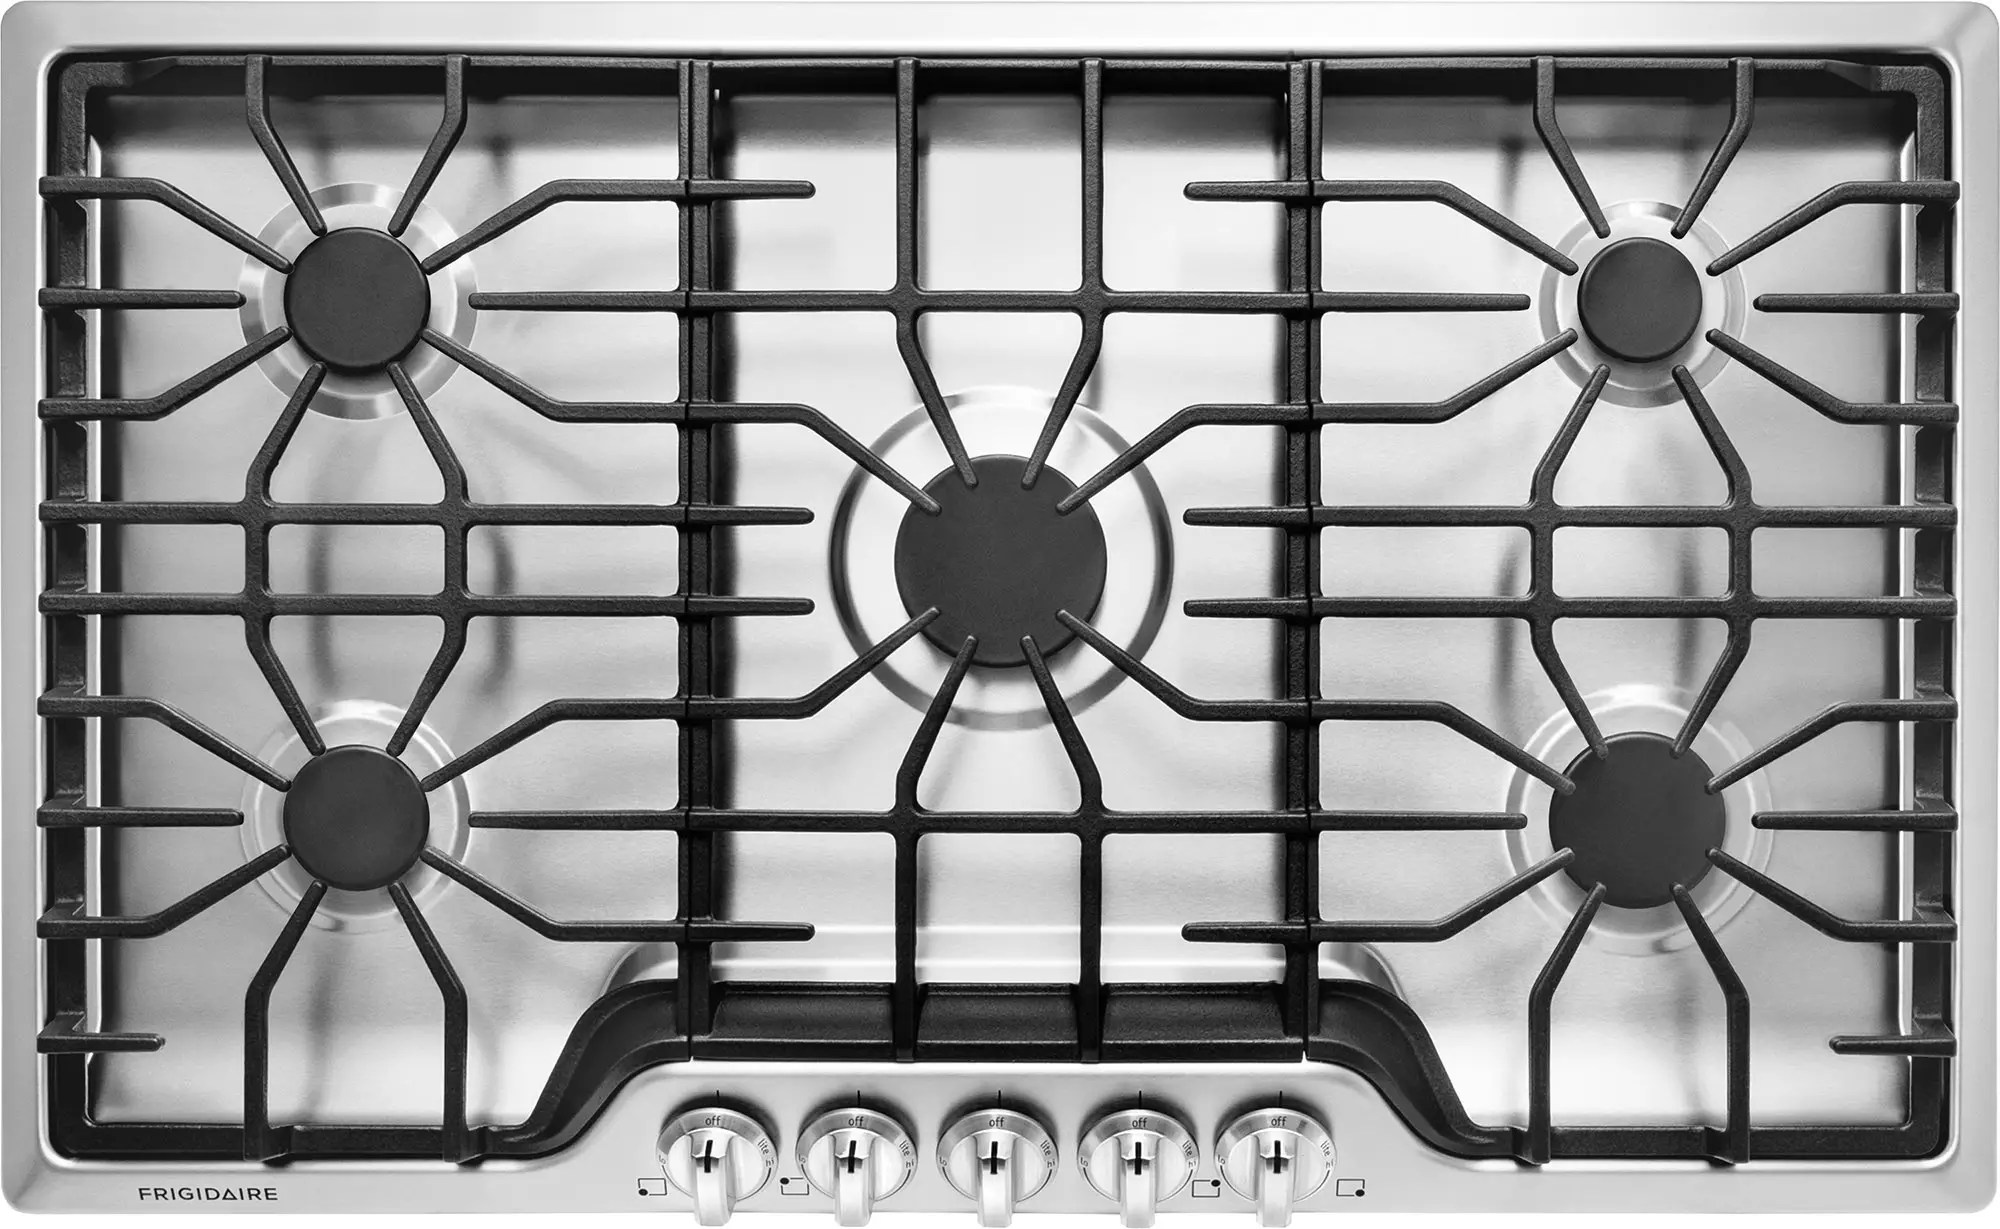 Gas Cooktop Installation Cost Frigidaire Ffgc3626ss 36 Inch Gas Cooktop With 5 Sealed